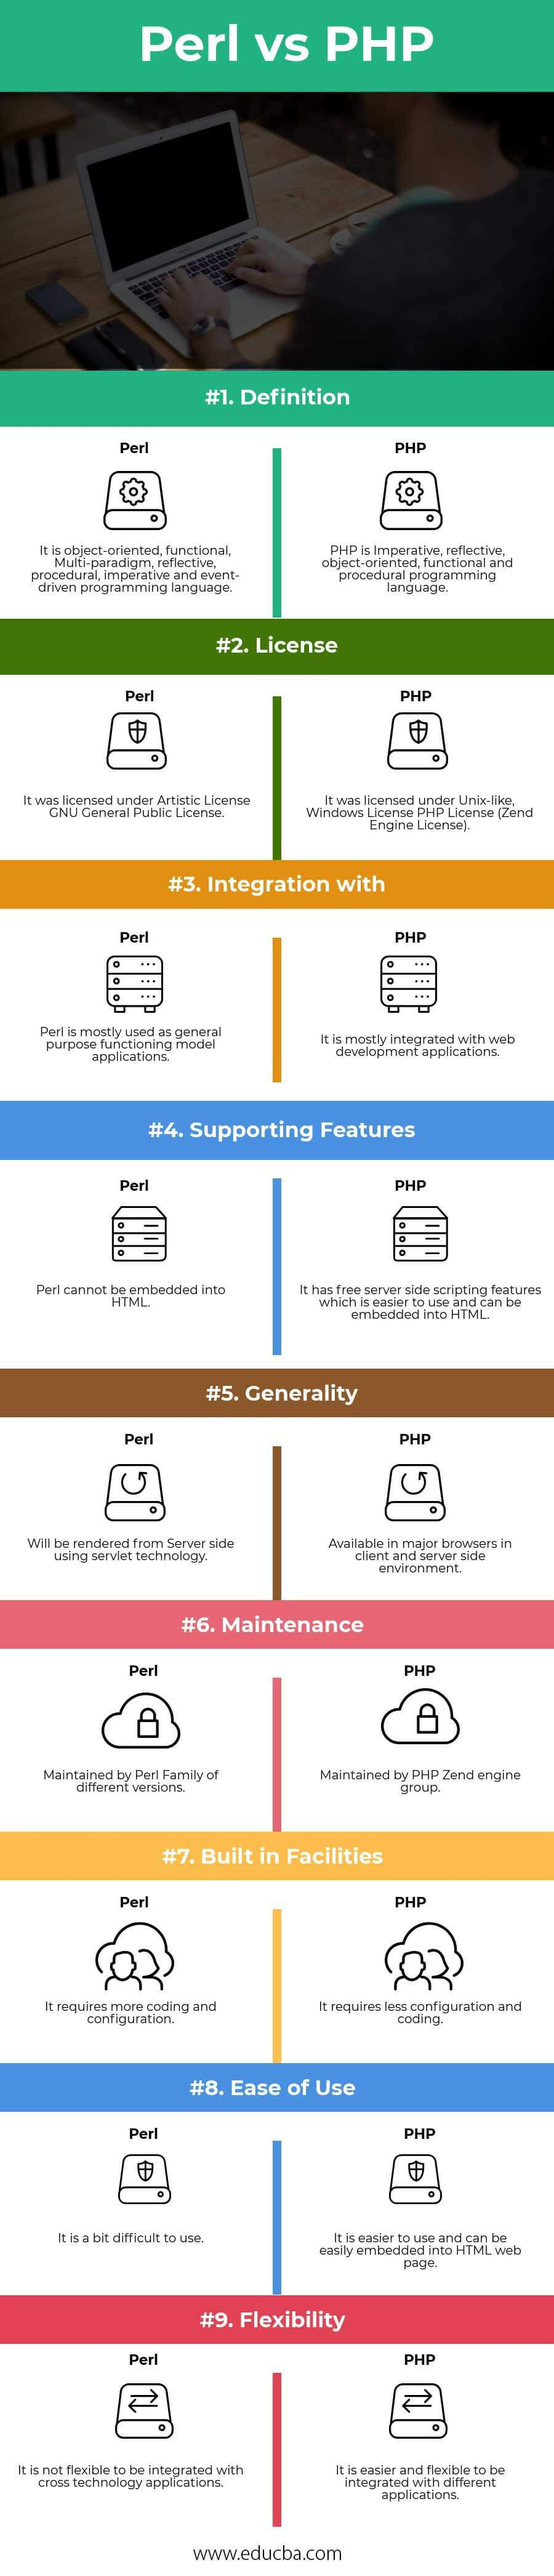 Perl vs PHP | Find Out The 9 Most Amazing Differences